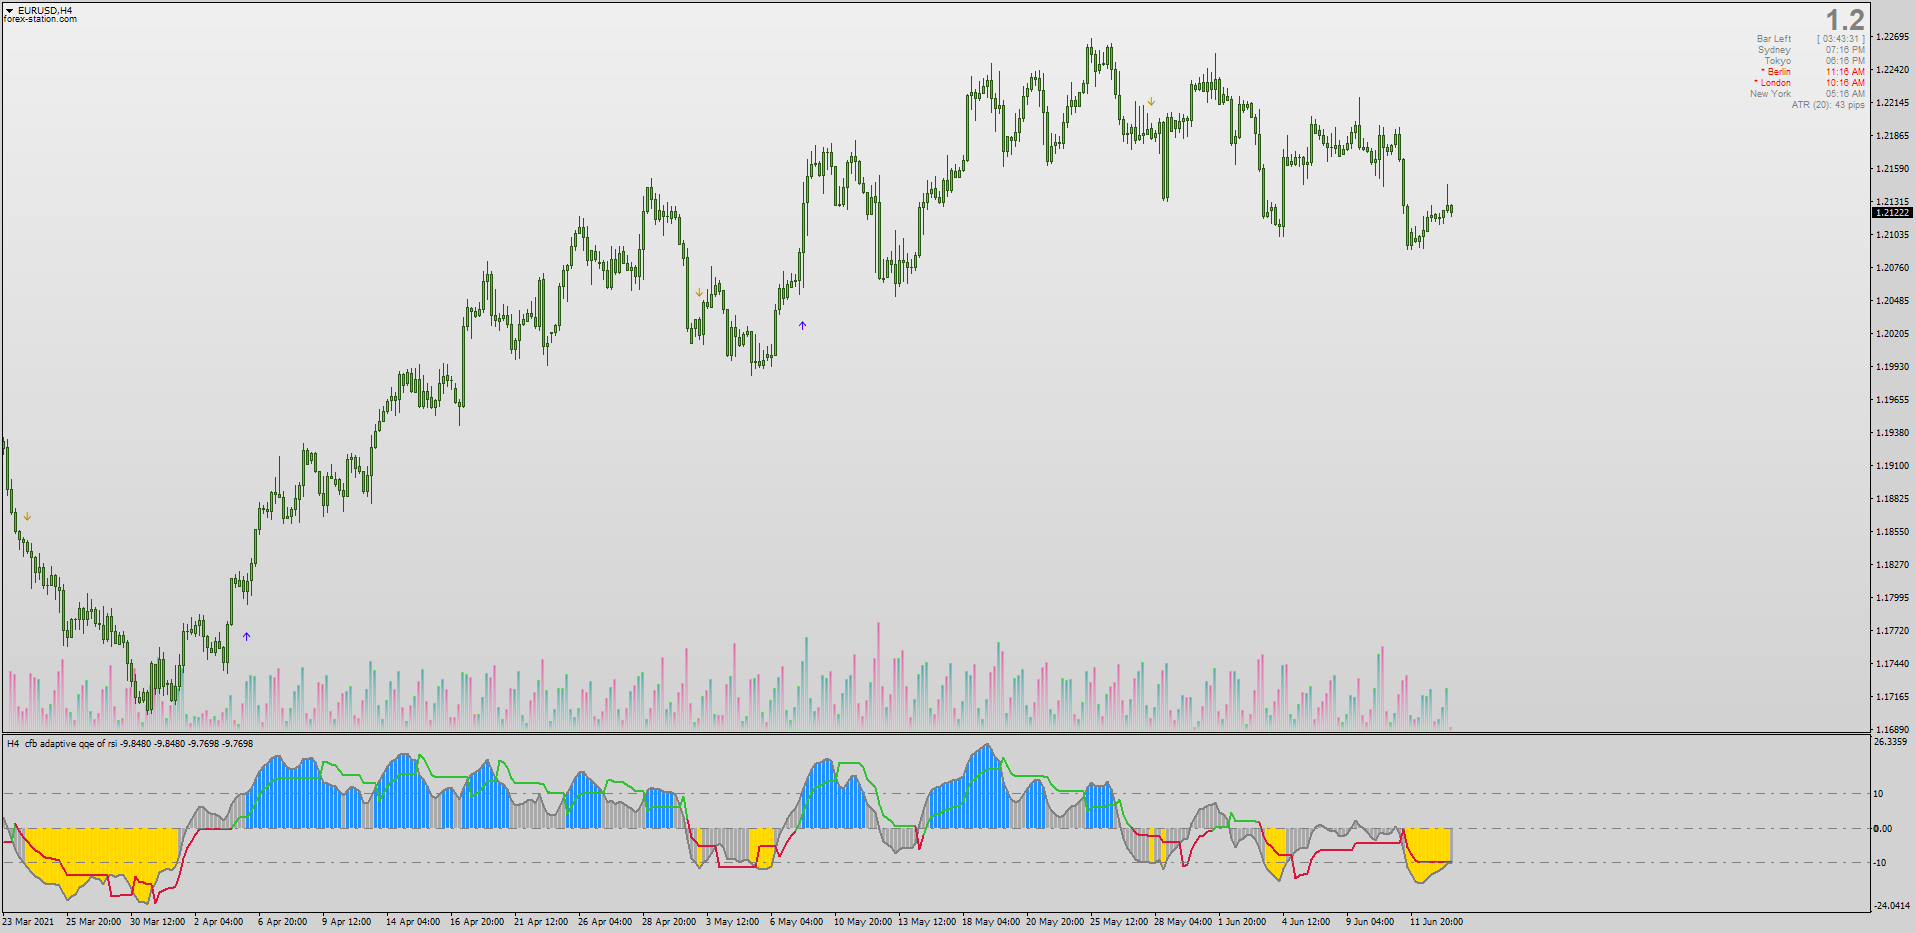 Free download of the Advanced ADX indicator by fabio77